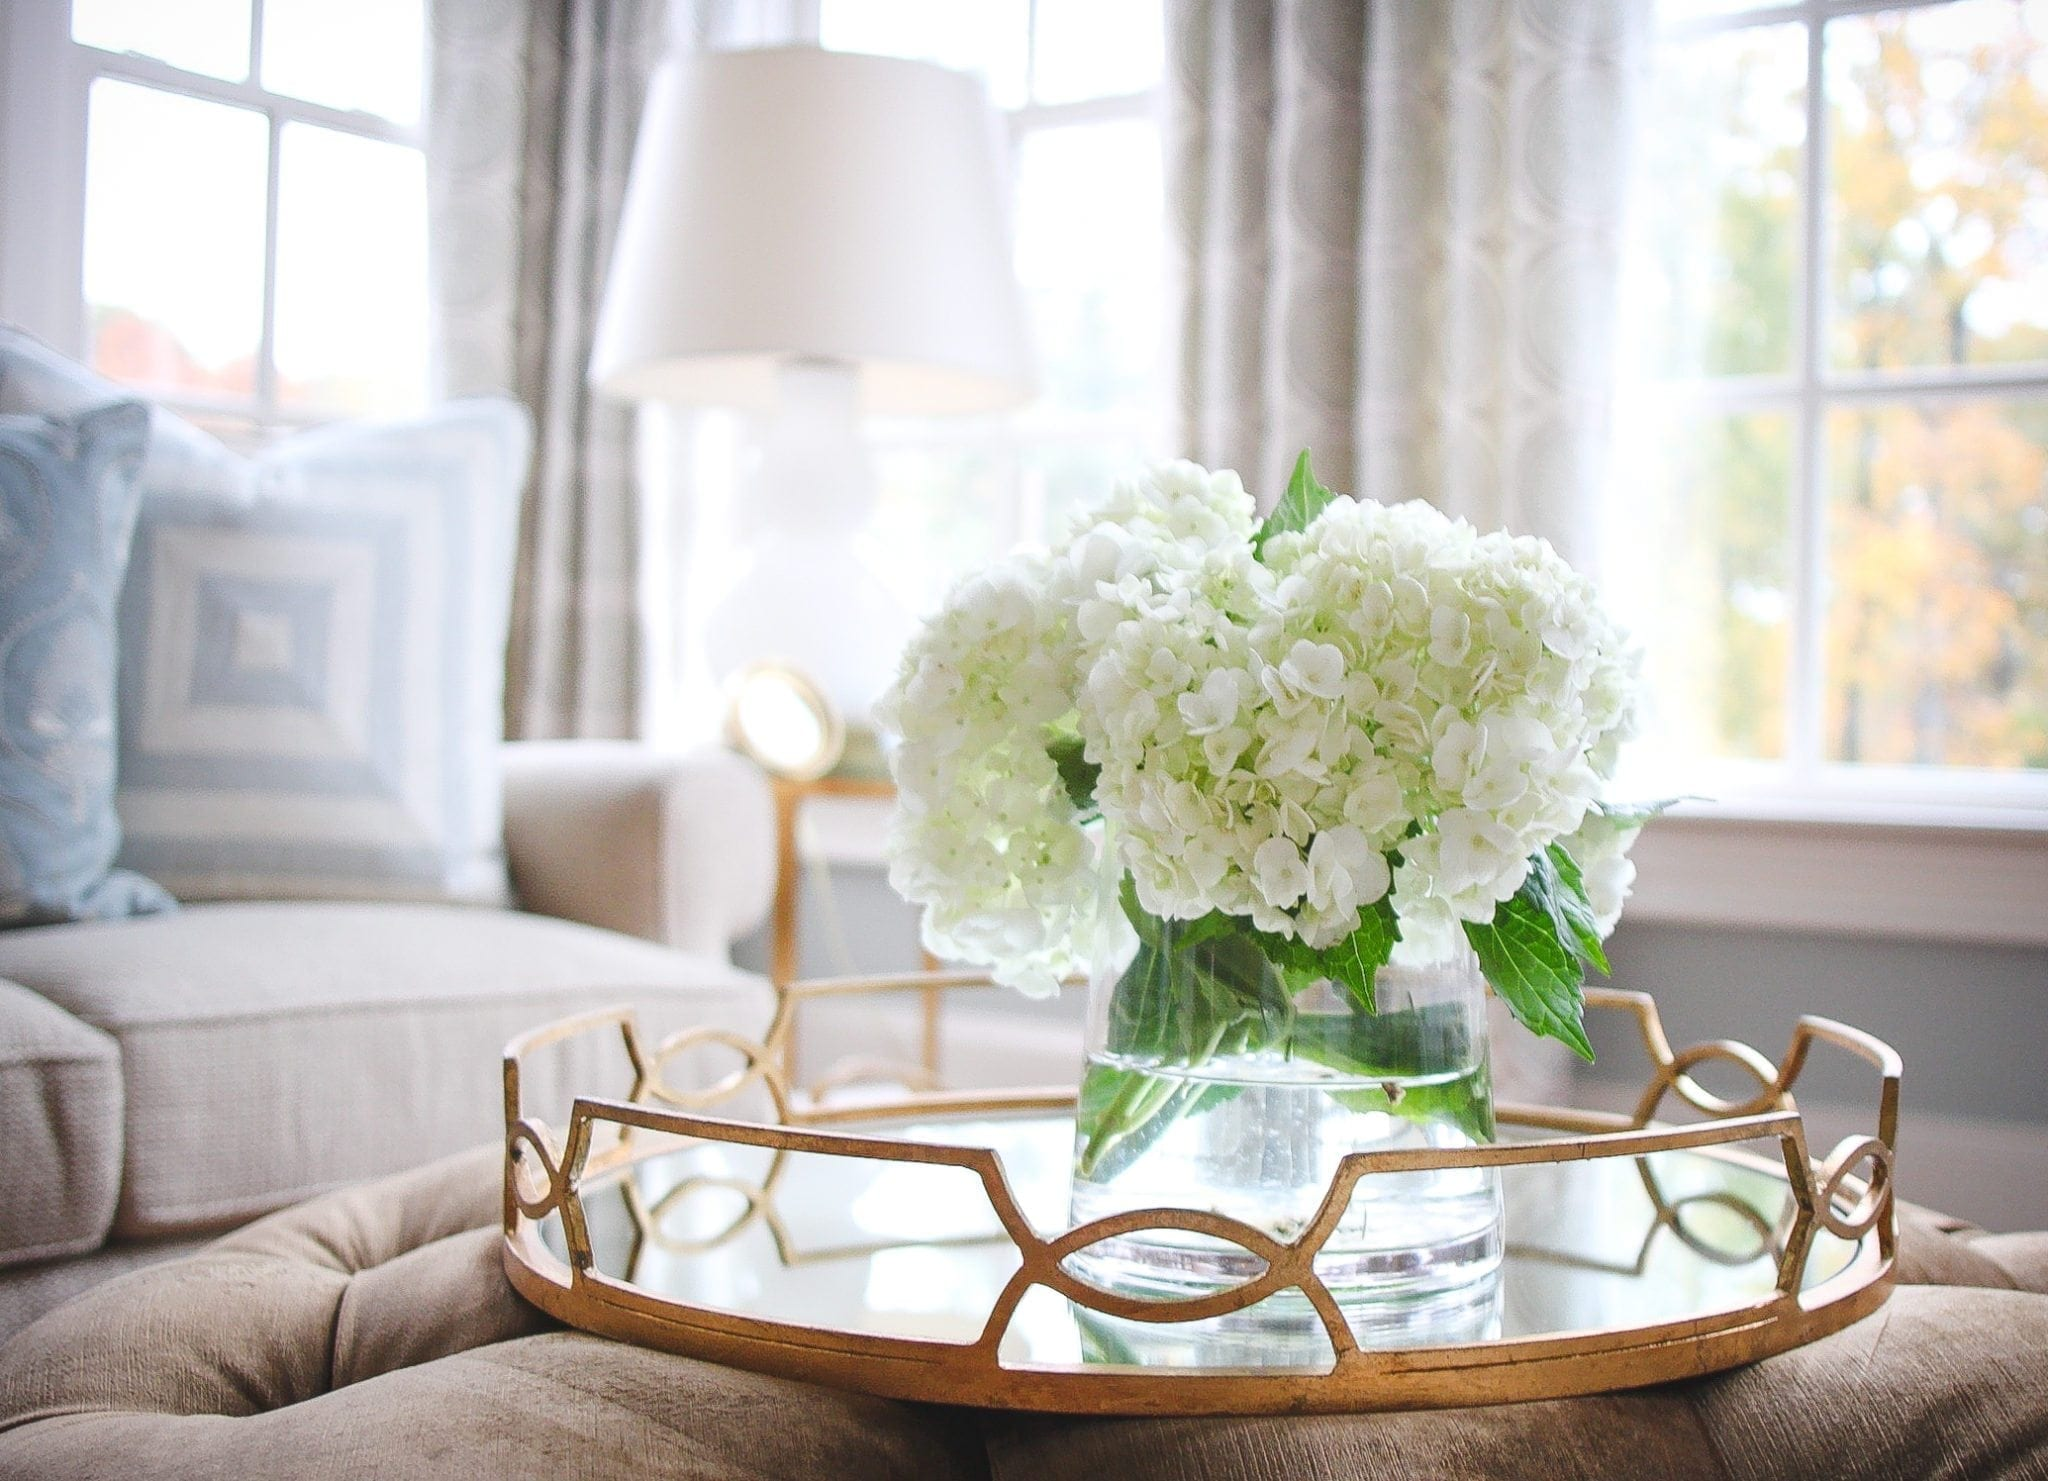 All white hydrangea flower arrangement in light blue living room.